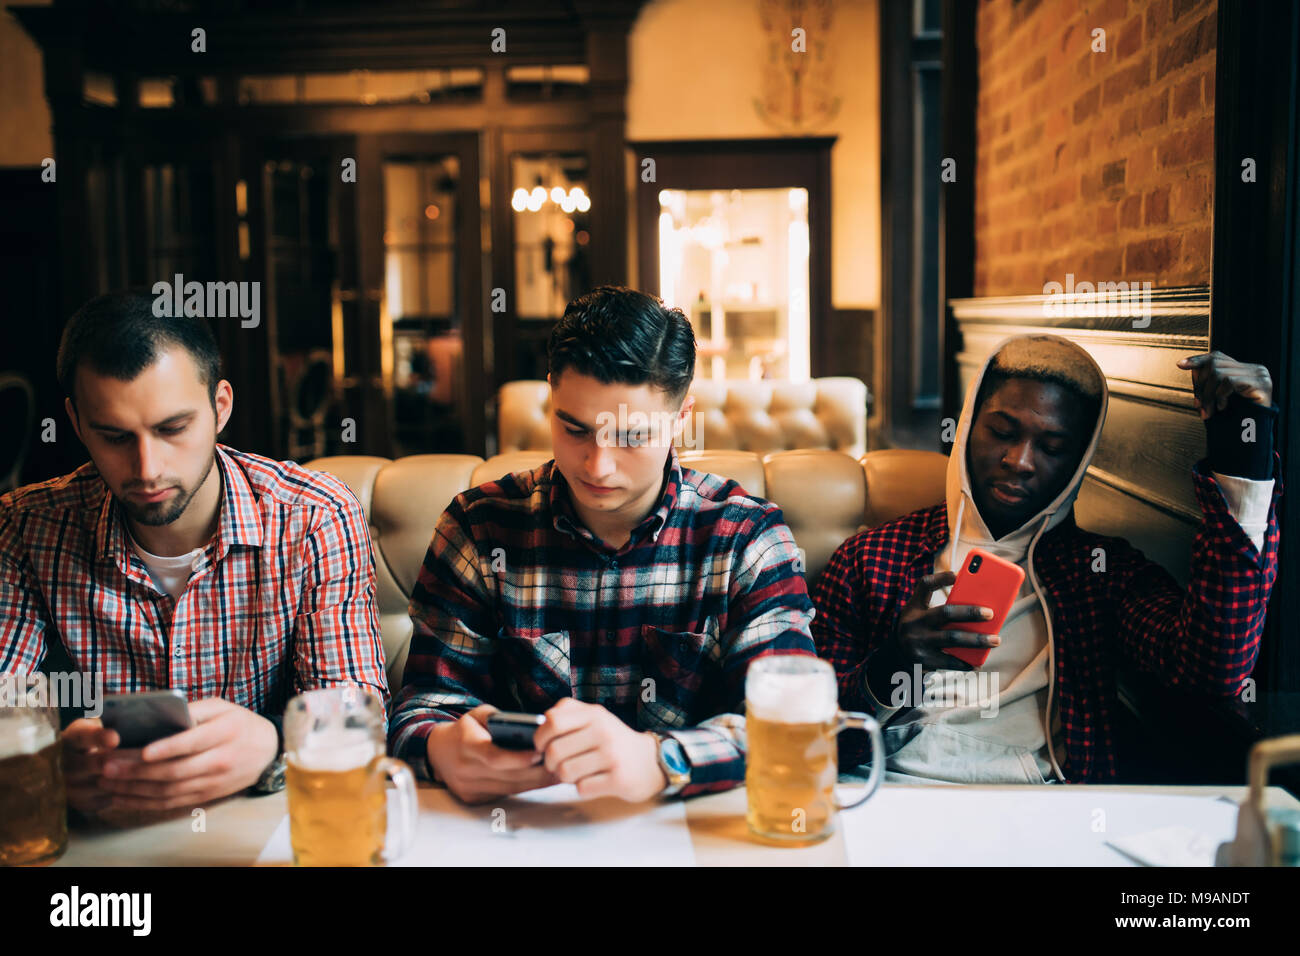 people, men, leisure, friendship and technology concept - male friends with smartphones drinking beer at bar or pub - Stock Image